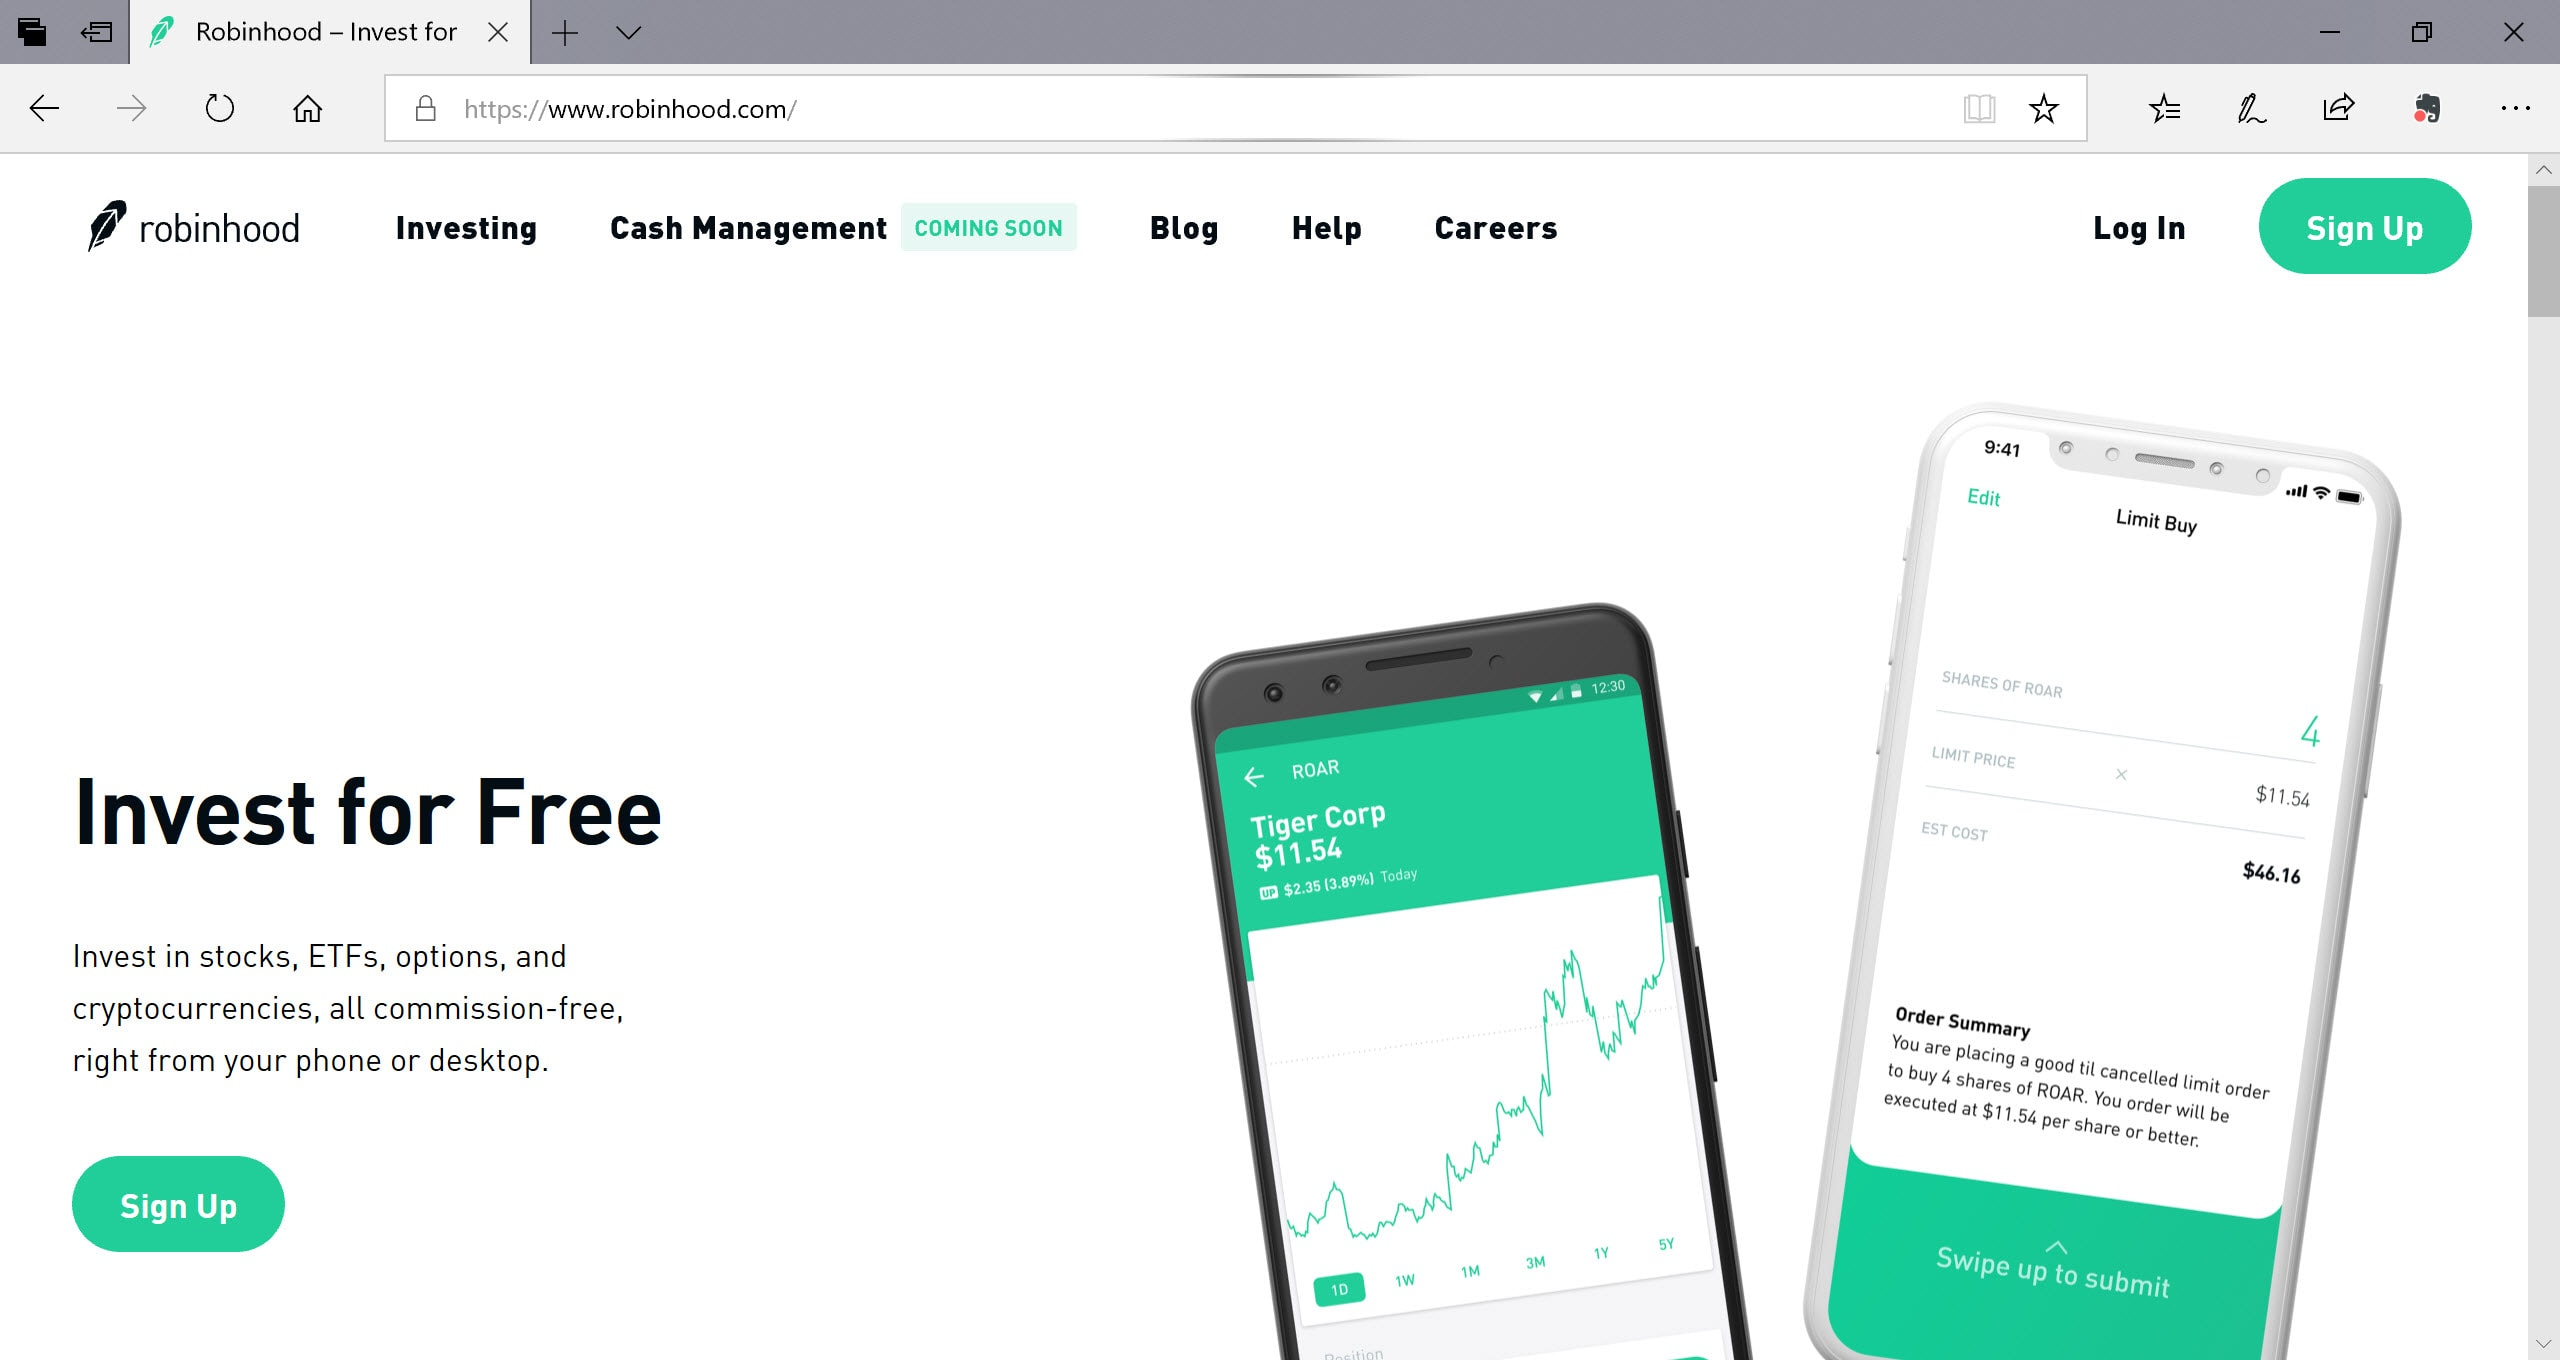 How To Place A Credit Spread Order With Robinhood Mobile App